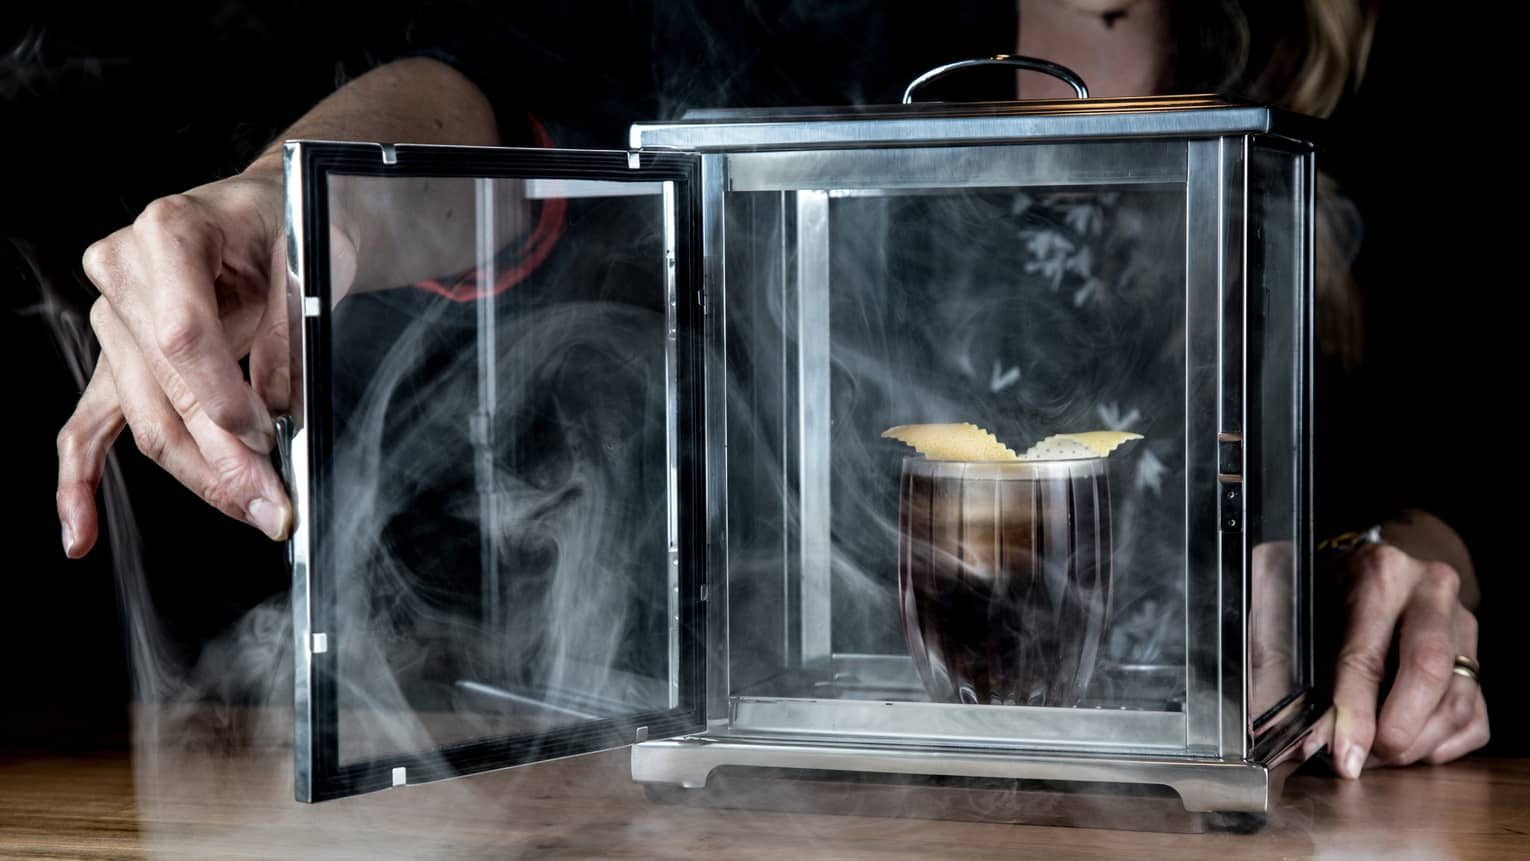 The Spirit of the Mountains specialty cocktail is served in a special container filled with swirling fog